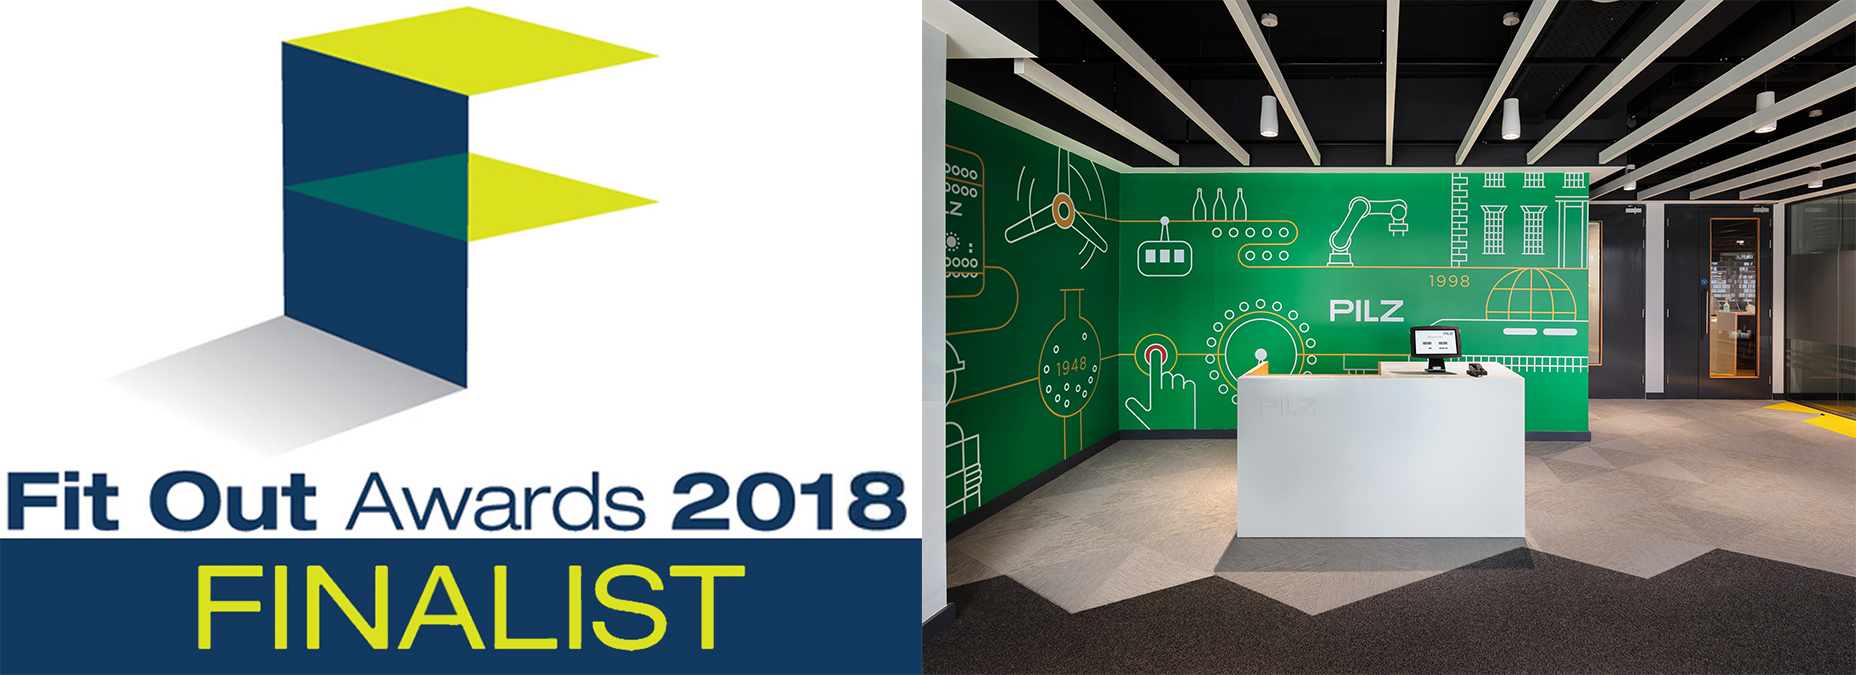 Fit Out Awards 2018 - Finalist